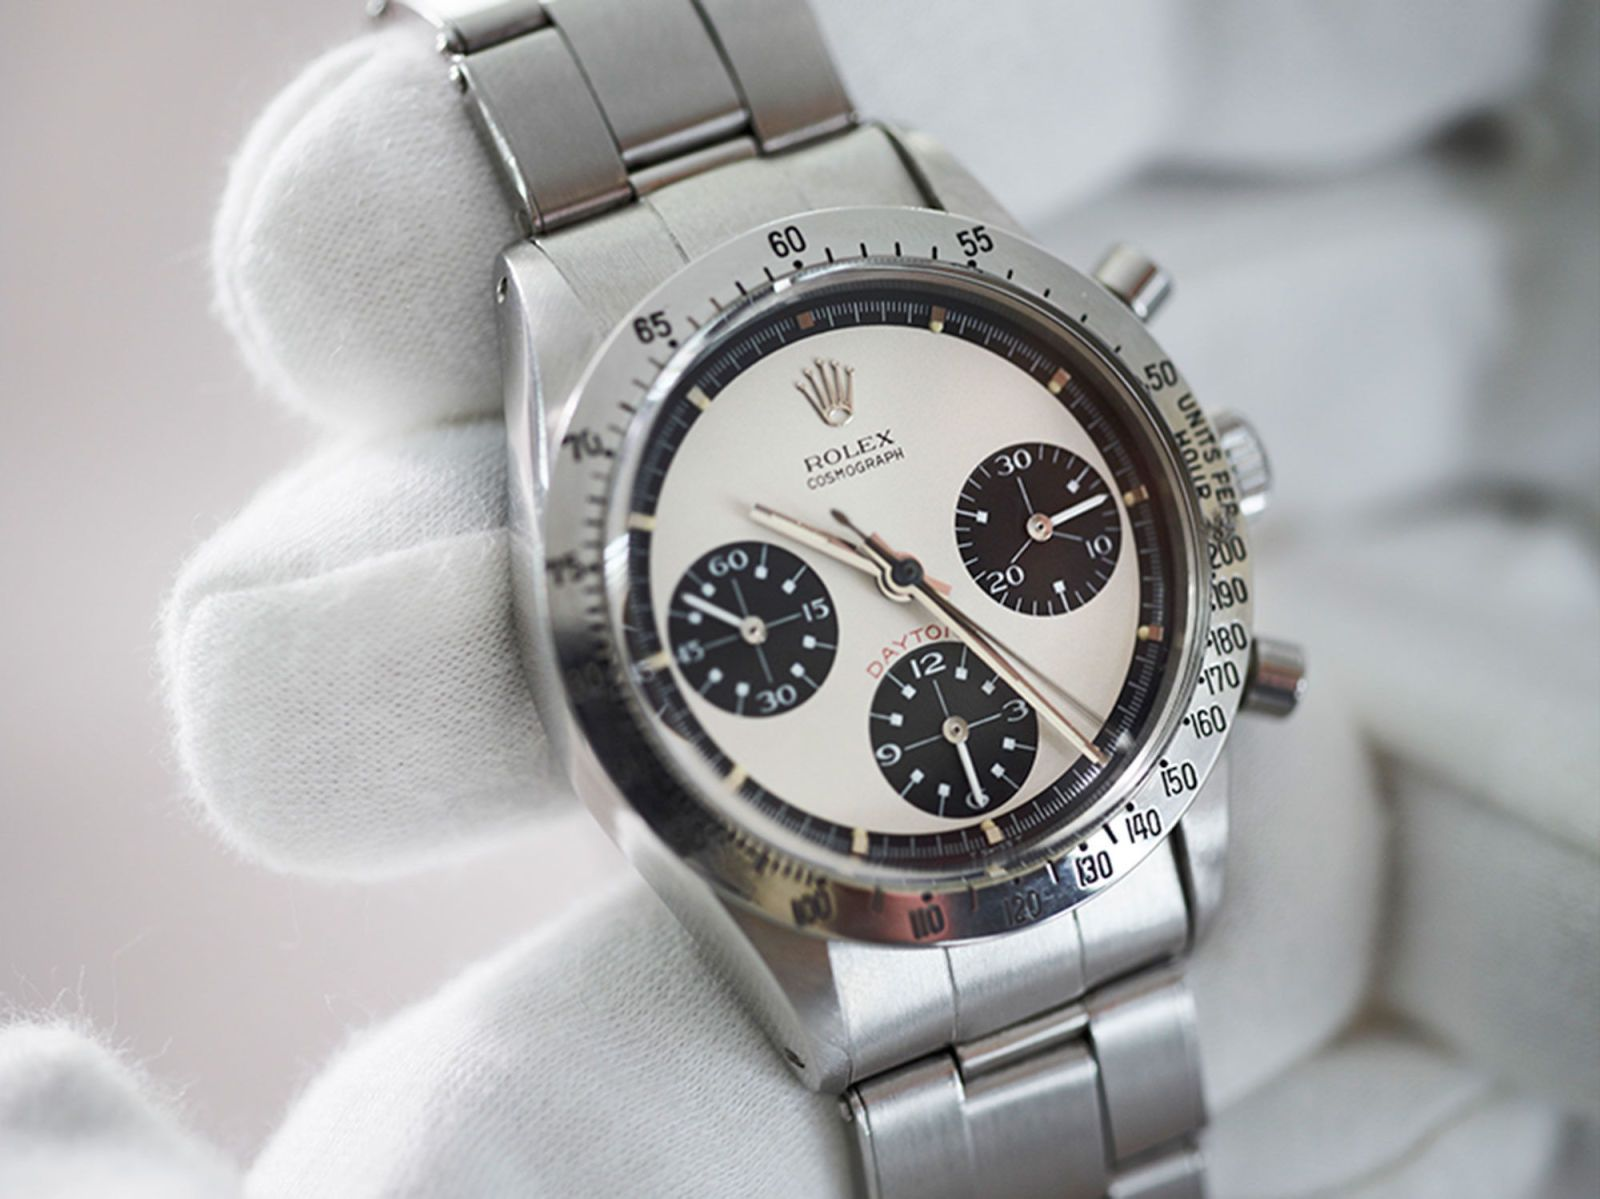 Inside The Booming World Of Vintage Watches